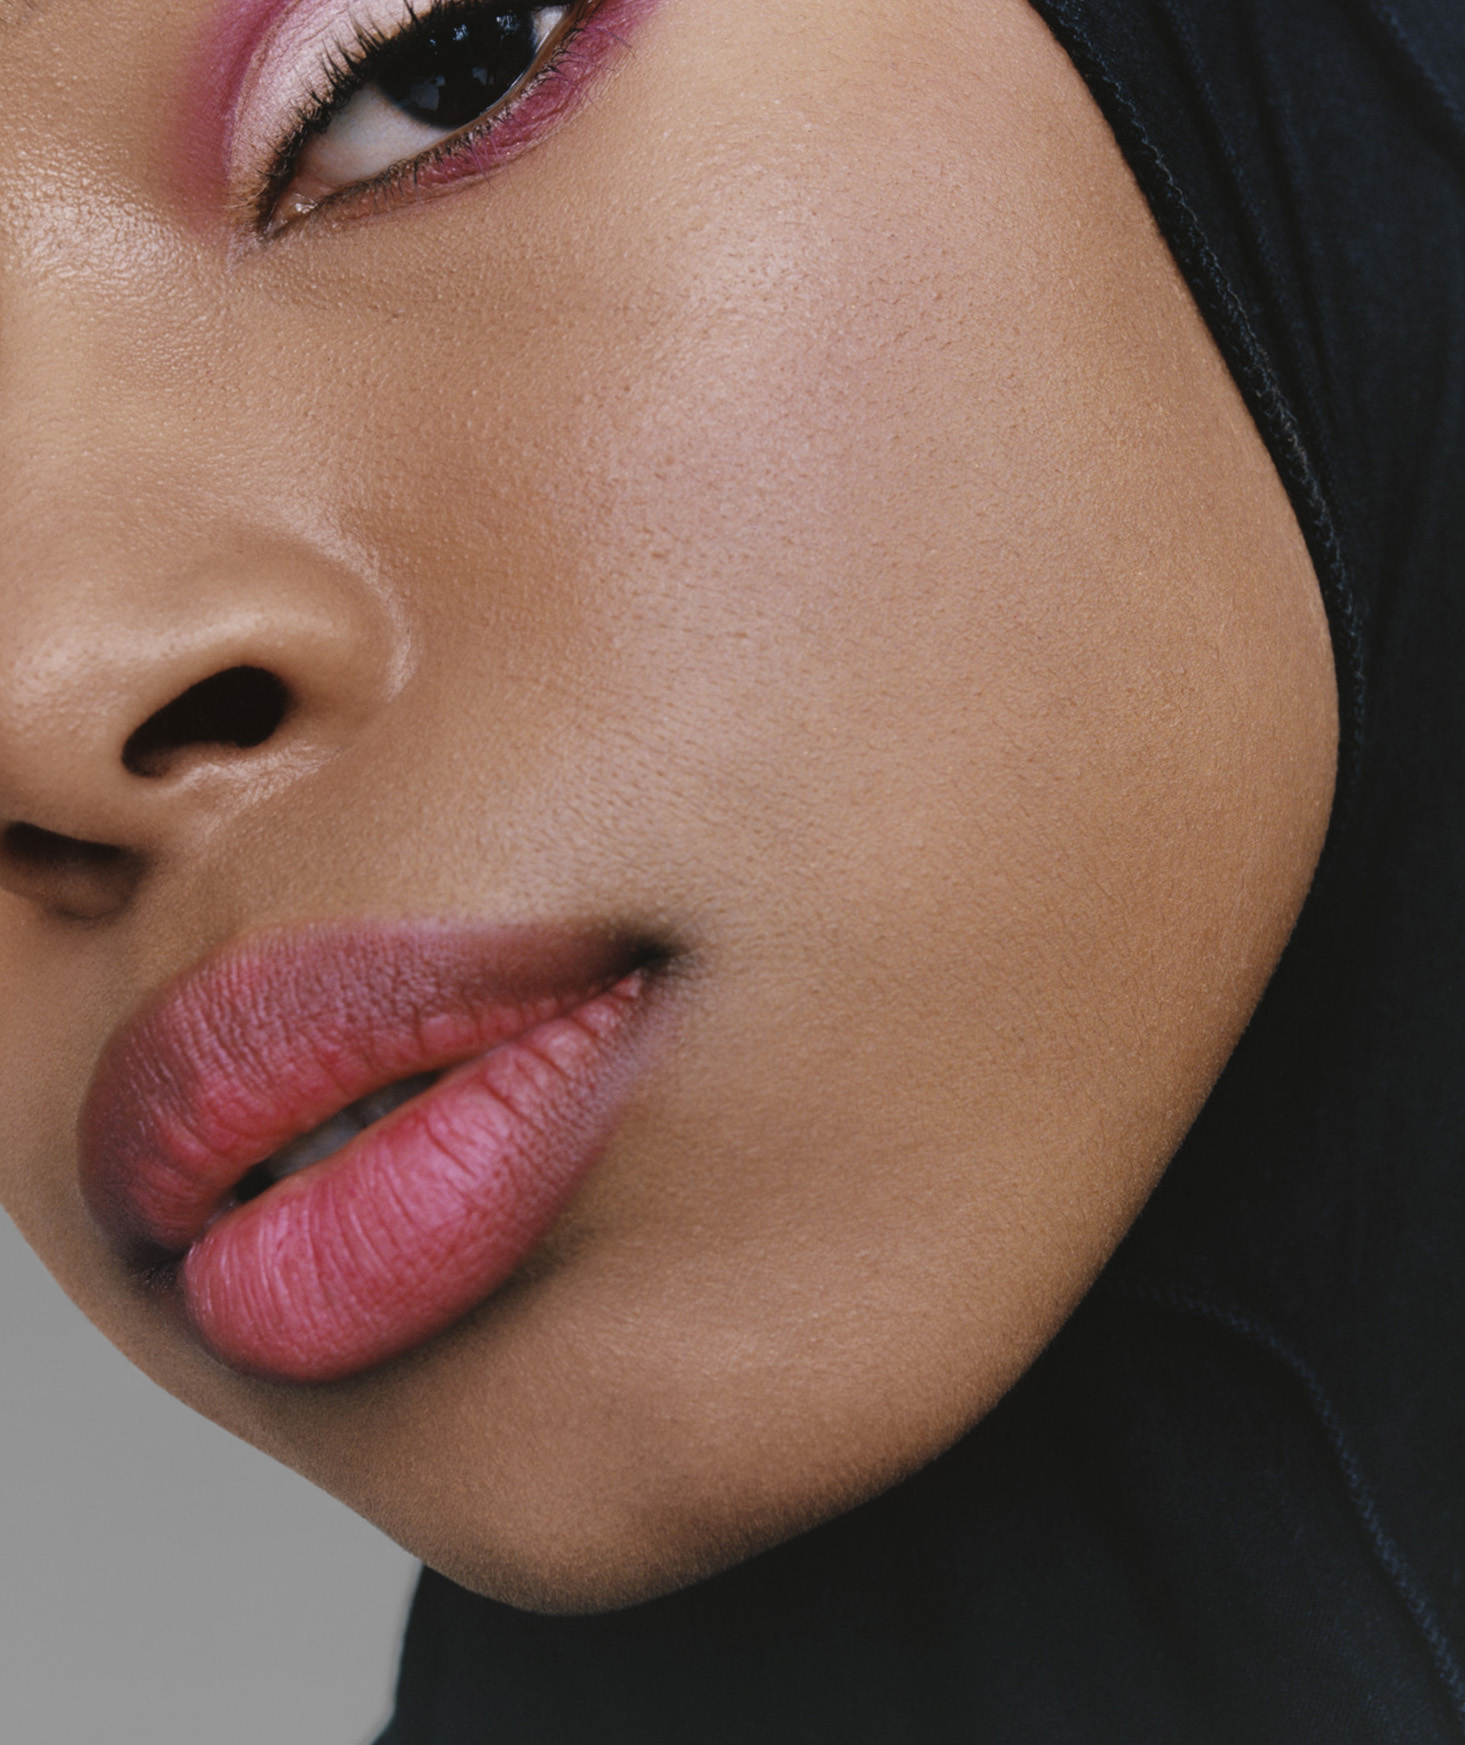 Glossier_GenerationG_Rafiqah_Crush_02_November-2018_CROP.jpg